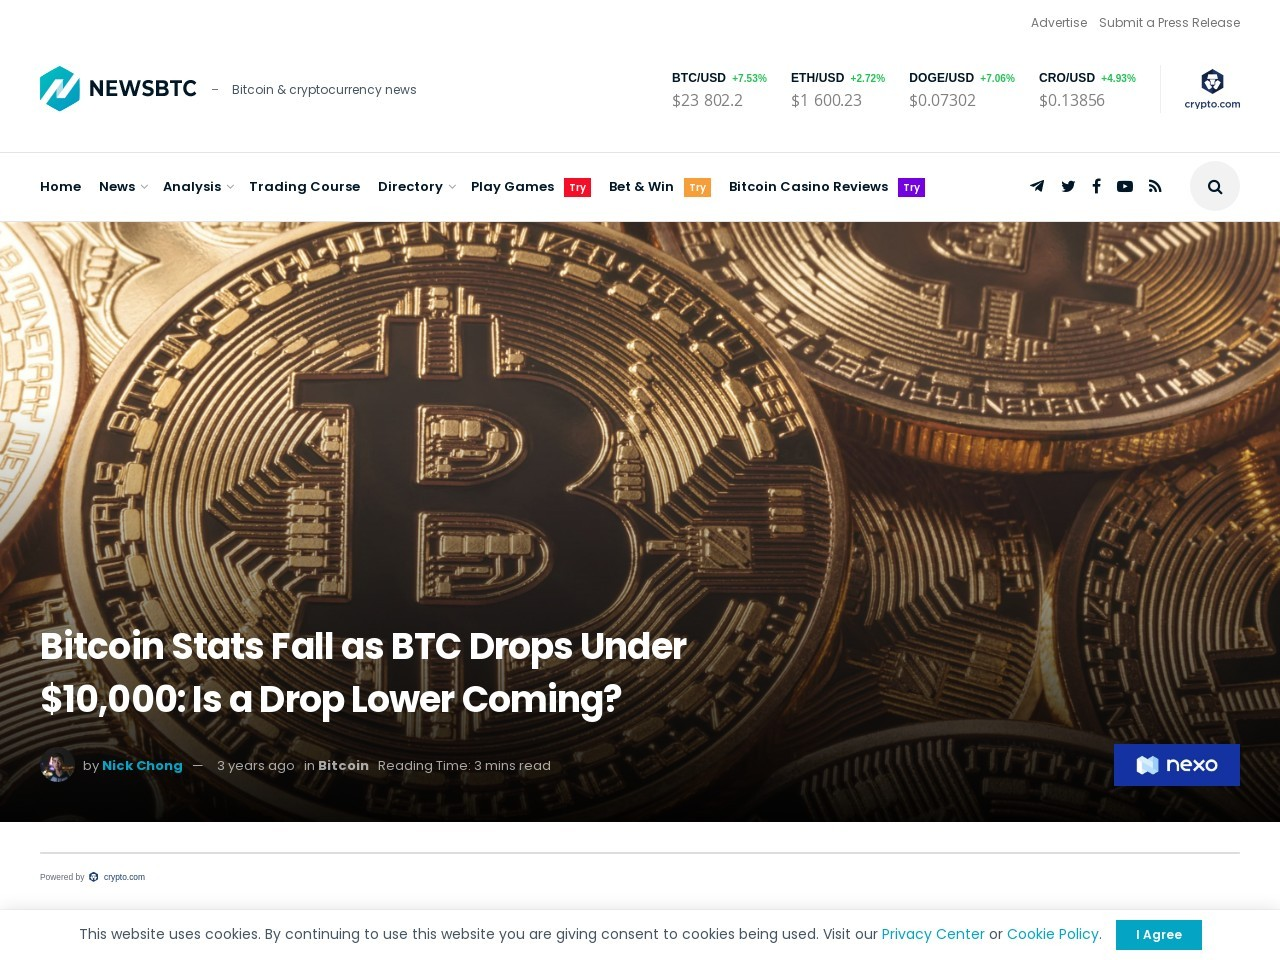 Bitcoin Stats Fall as BTC Drops Under $10,000: Is a Drop Lower Coming?